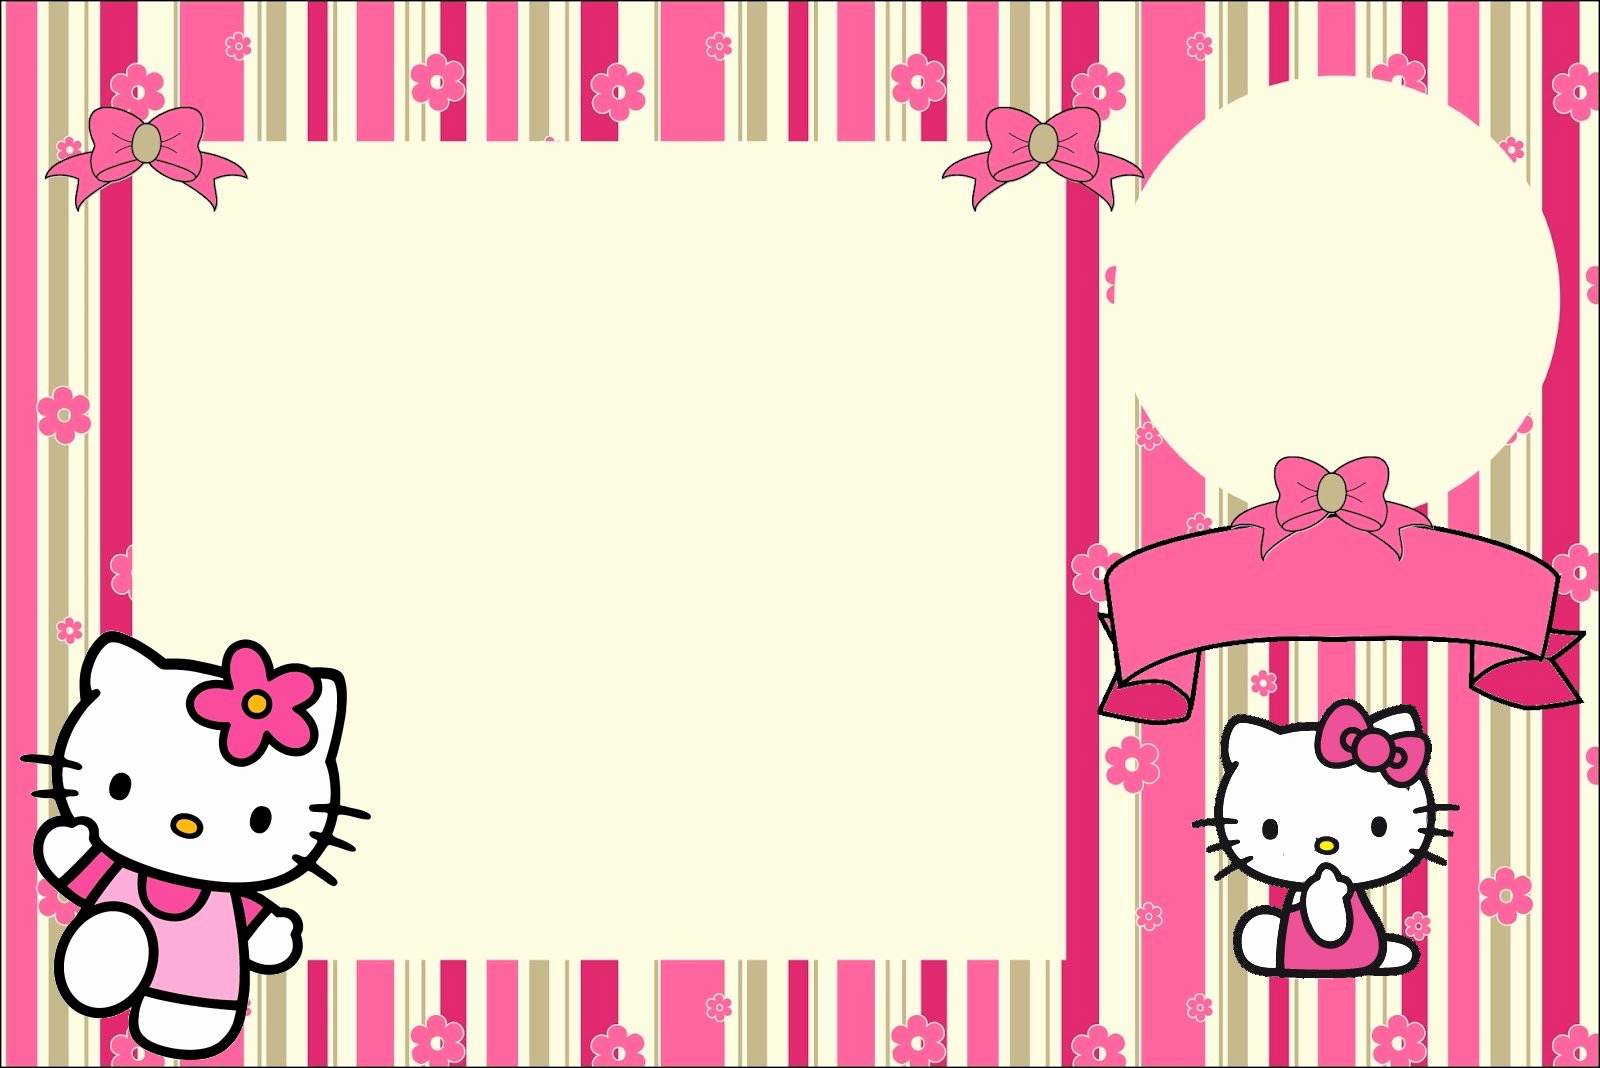 Hello Kitty Invitation Templates Unique Hello Kitty with Flowers Free Printable Invitations Oh